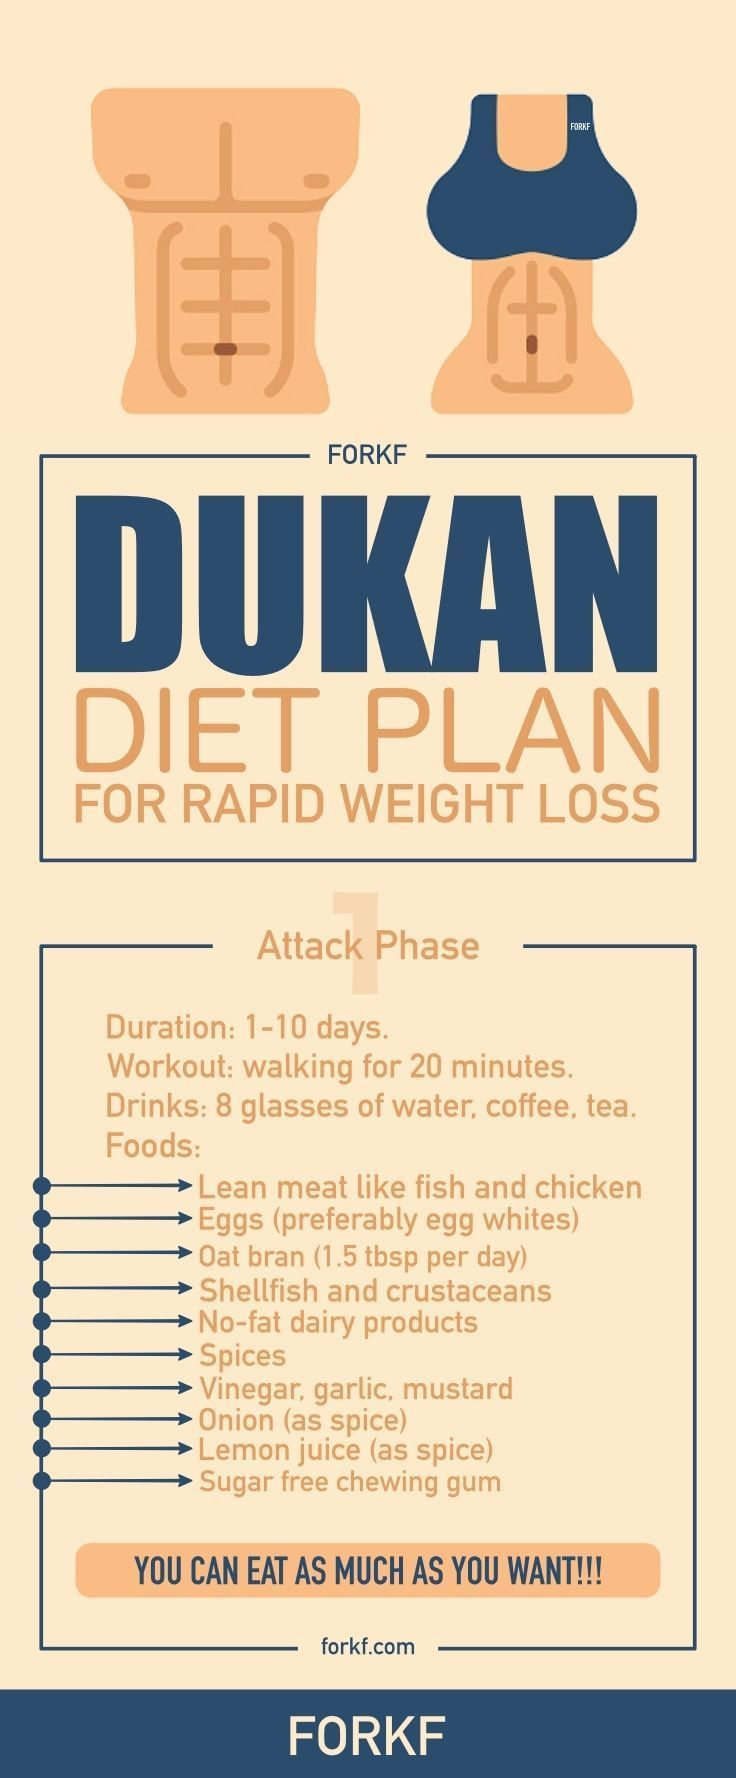 Lose weight by Dyukan: what can and can not be